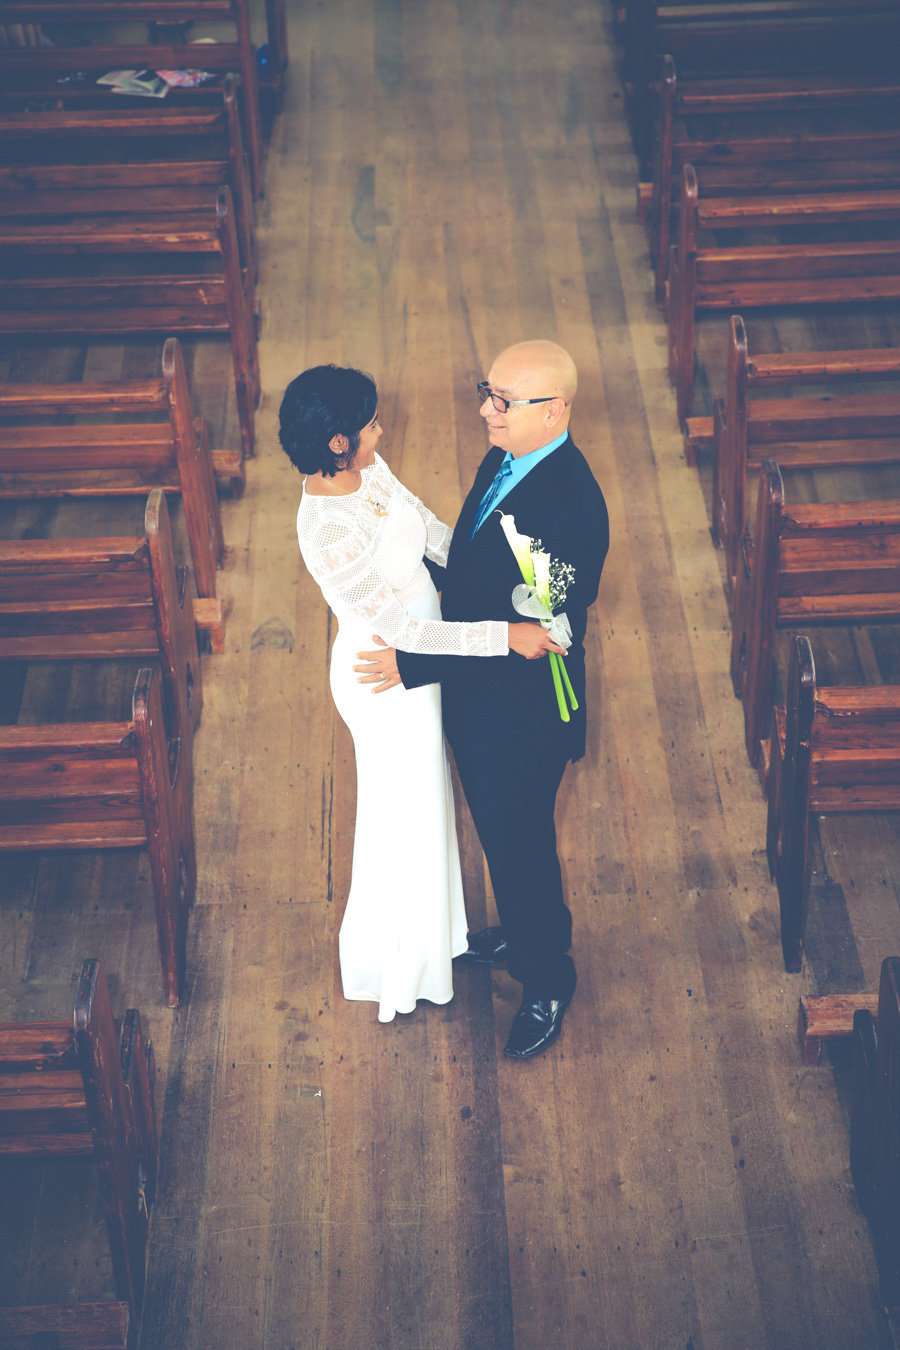 Bride and father-of-the-bride share a moment in church aisle. Photo by Ross Photography, Trinidad, W.I..